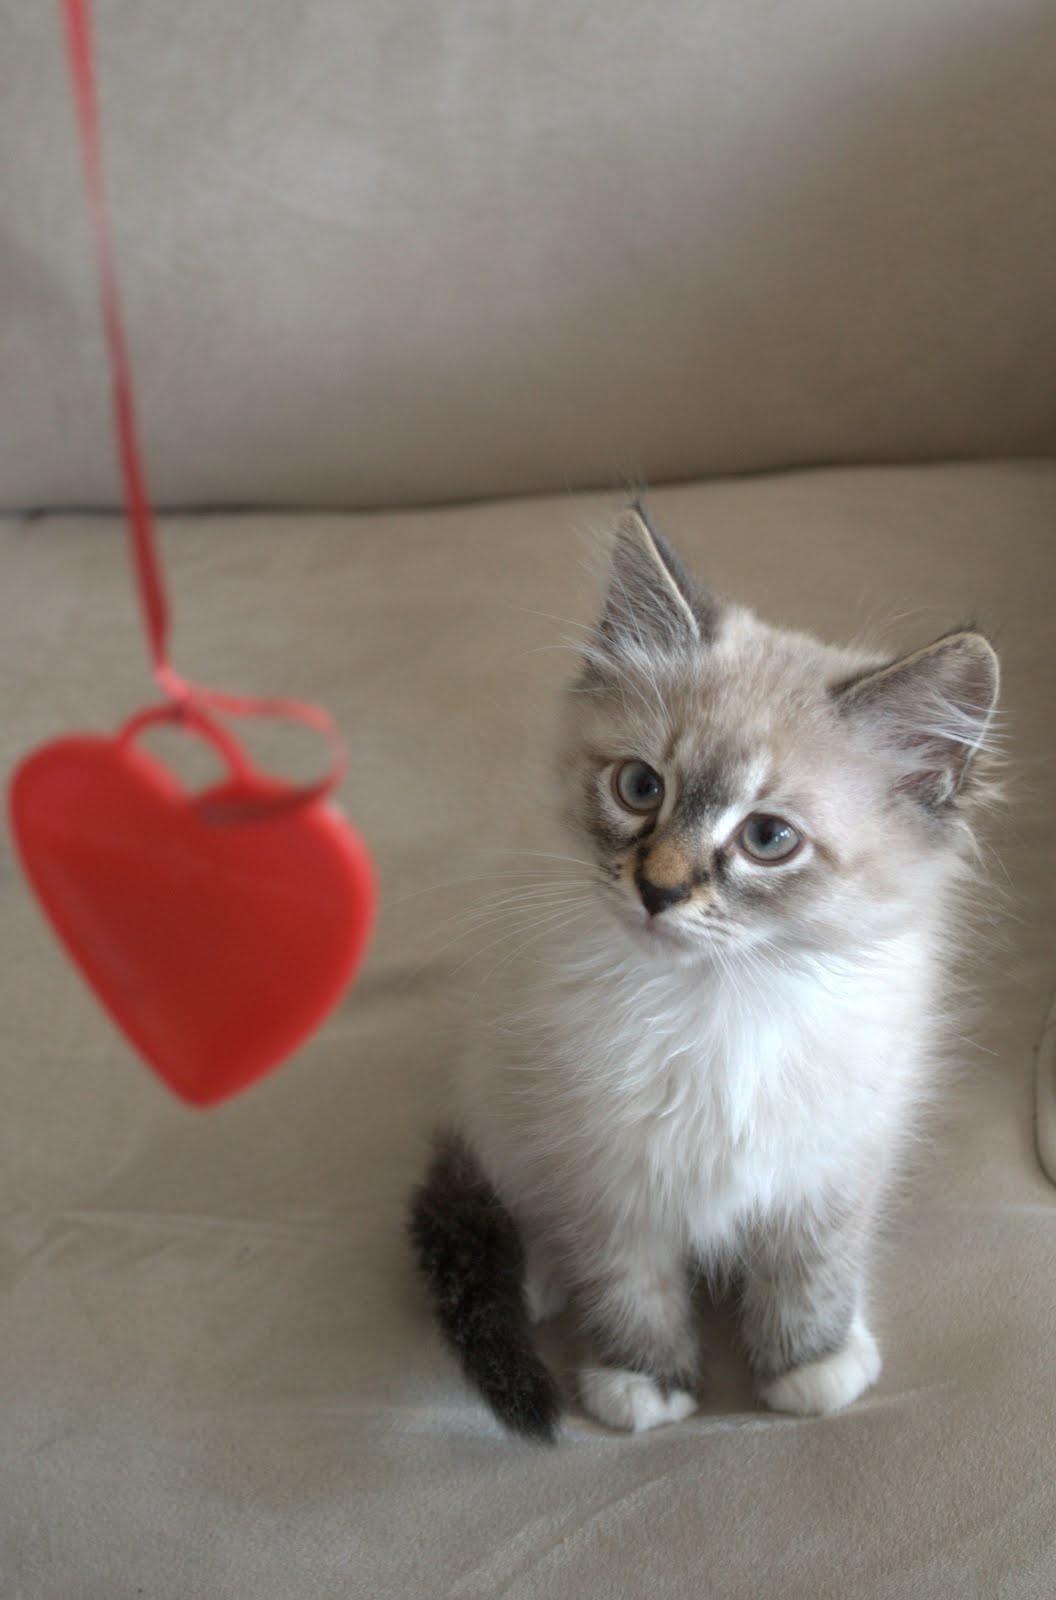 images of cats and kittens and valentines